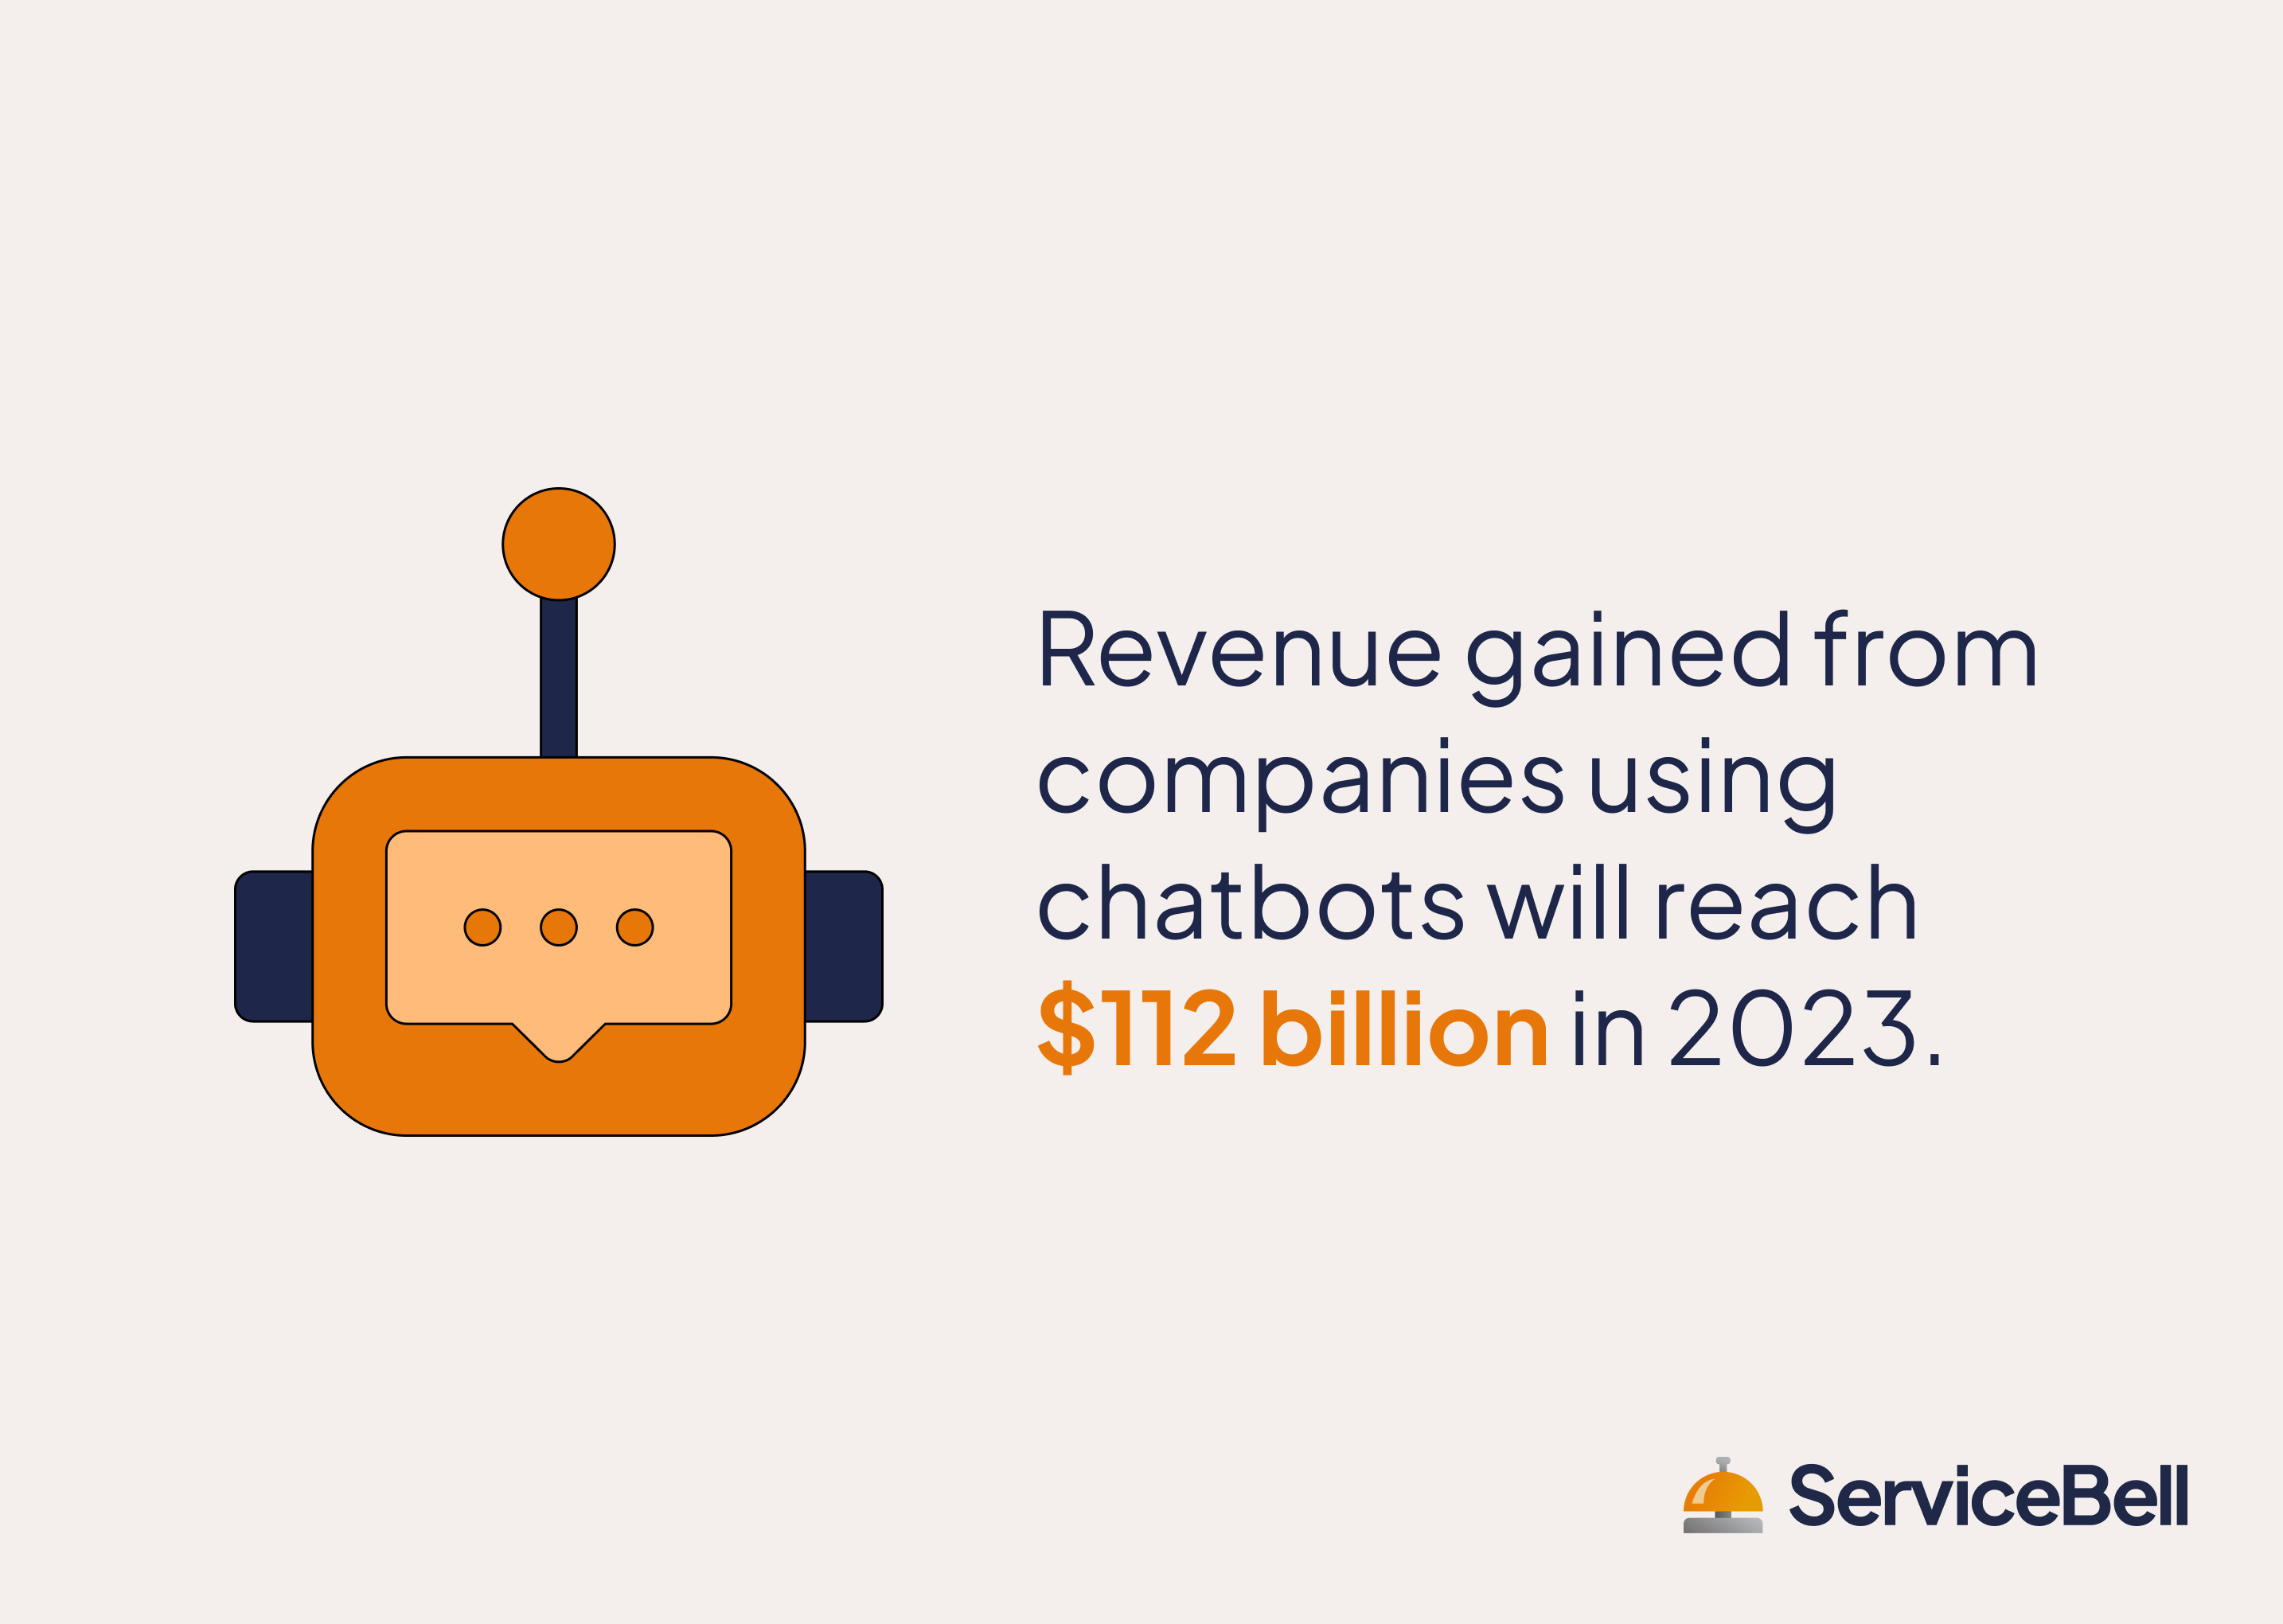 revenue companies gained from using chatbots